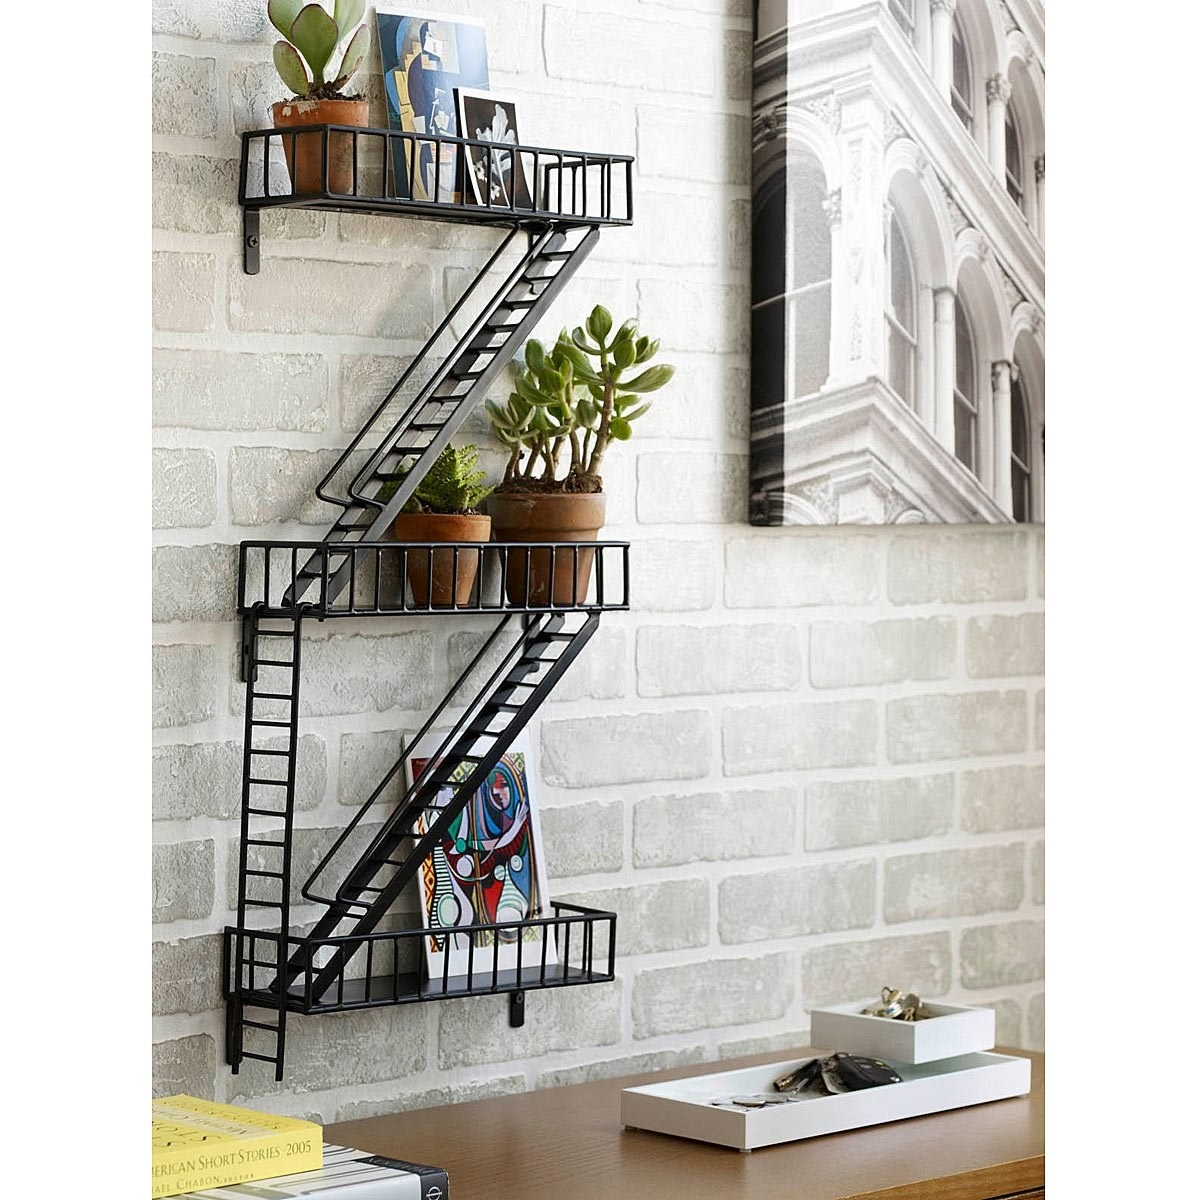 this fireescape shelf for the apartment dweller whou0027s sick of their landlord telling them they canu0027t keep potted plants on their real fire escape